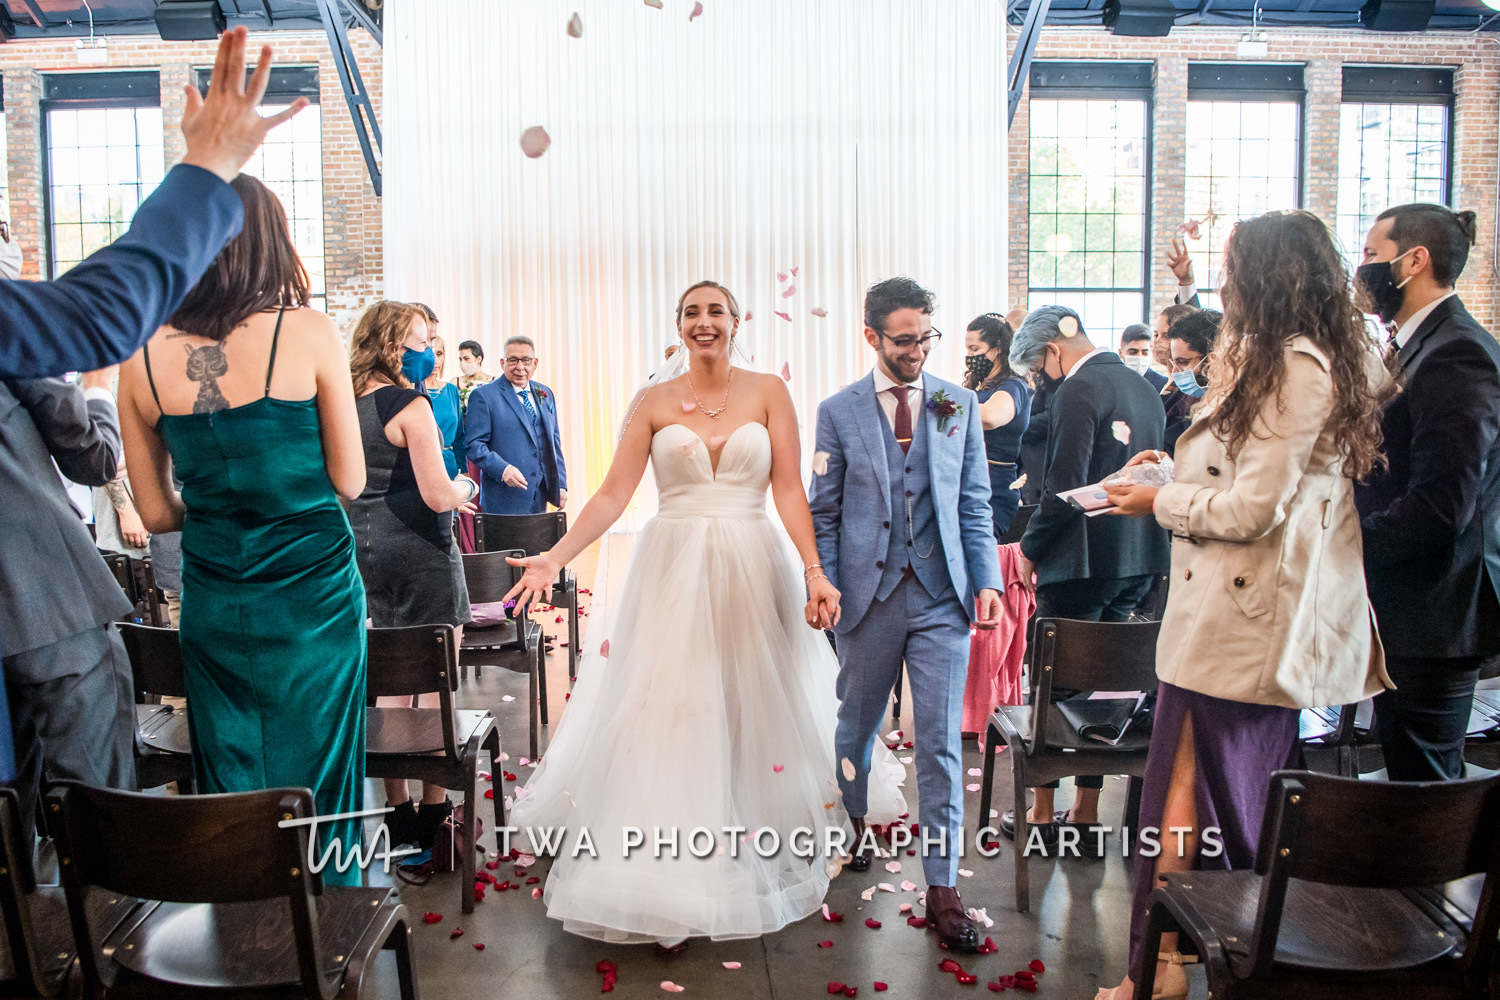 Chicago-Wedding-Photographer-TWA-Photographic-Artists-City-Hall-Event_Masterova_Alkhateeb_AA-0397